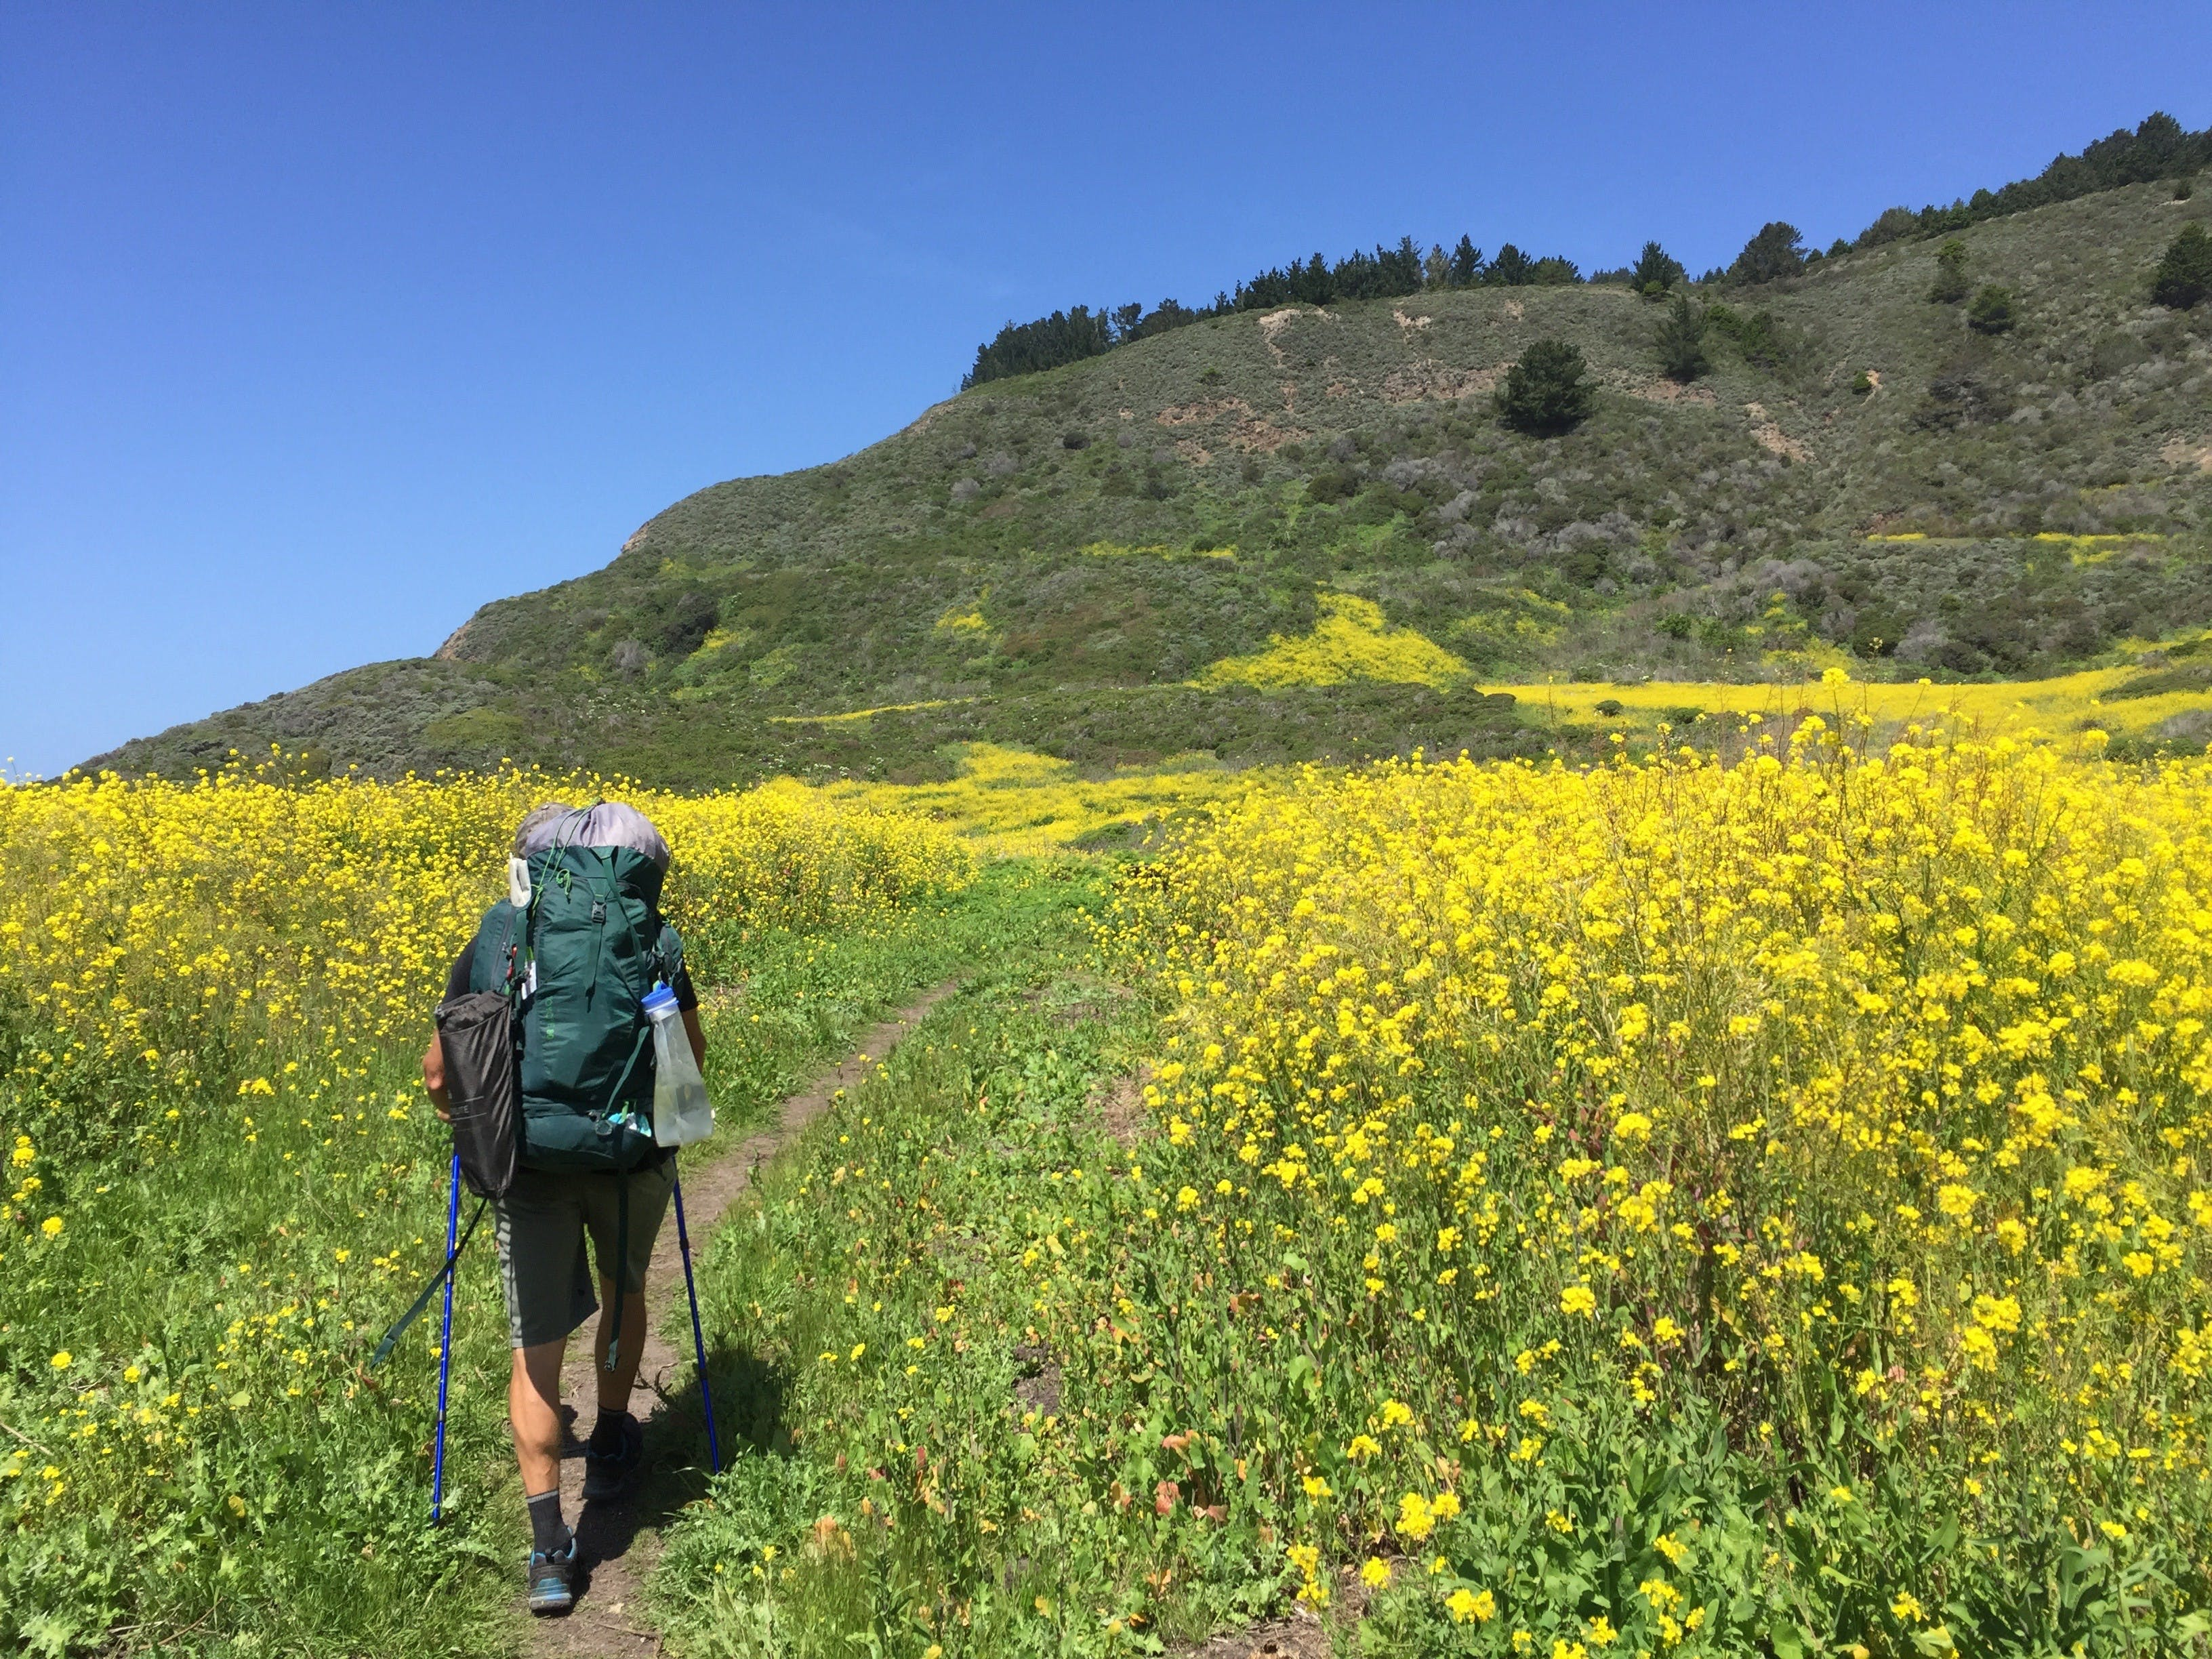 Backpacker hiking on the Coast Trail surrounded by yellow wildflowers in Point Reyes National Seashore